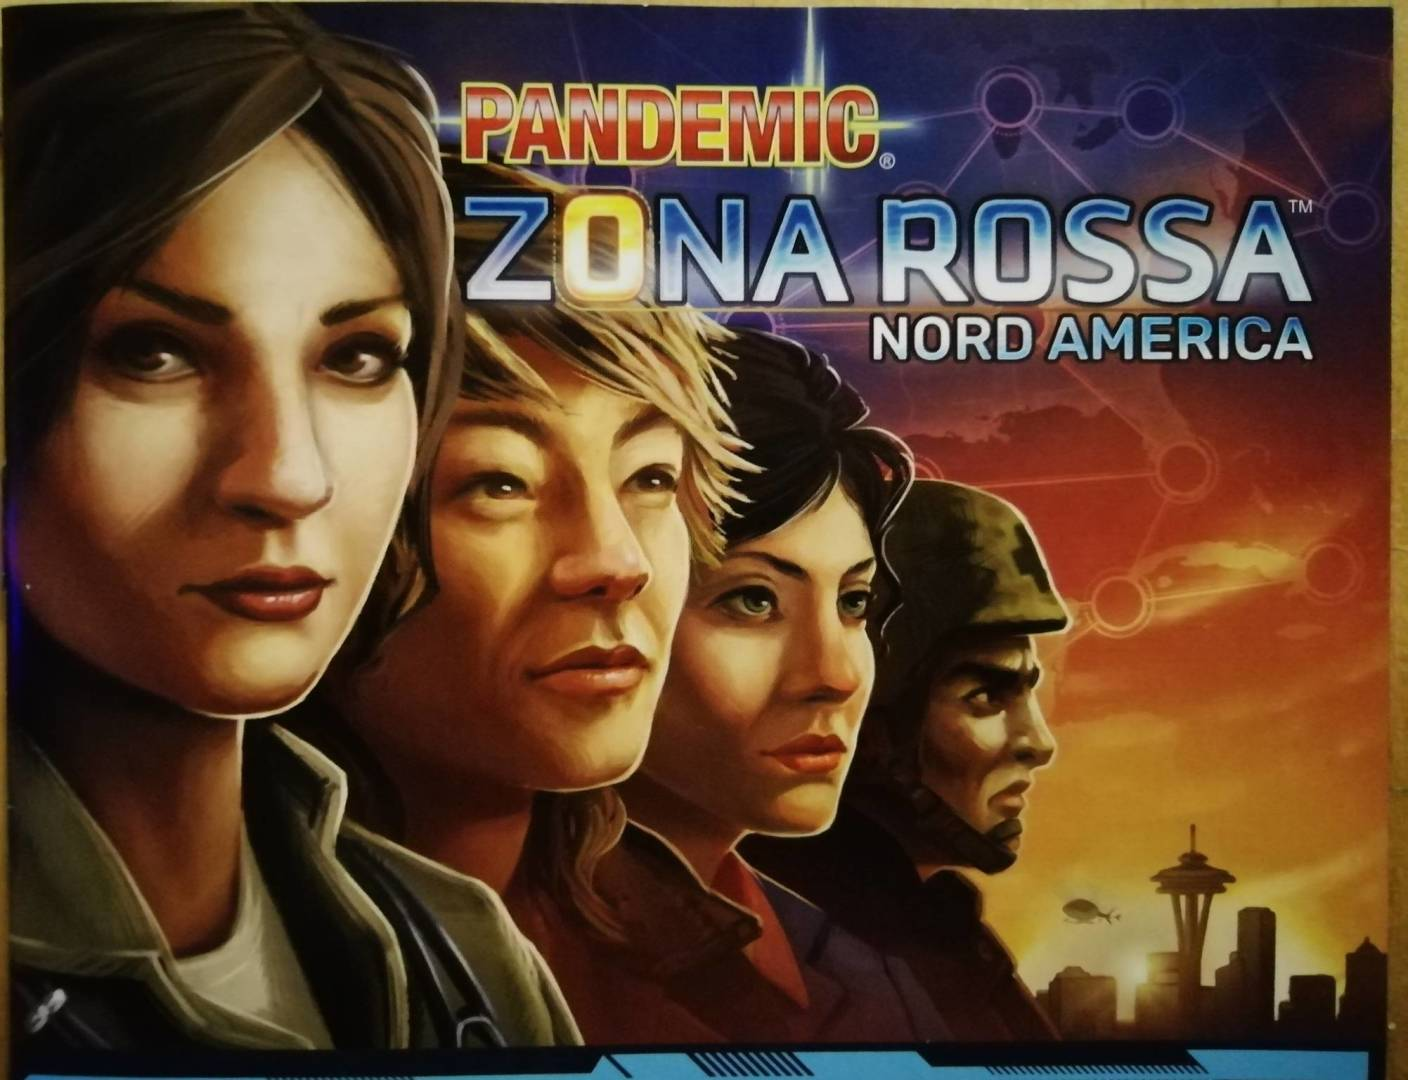 Pandemic Zona Rossa Nord America